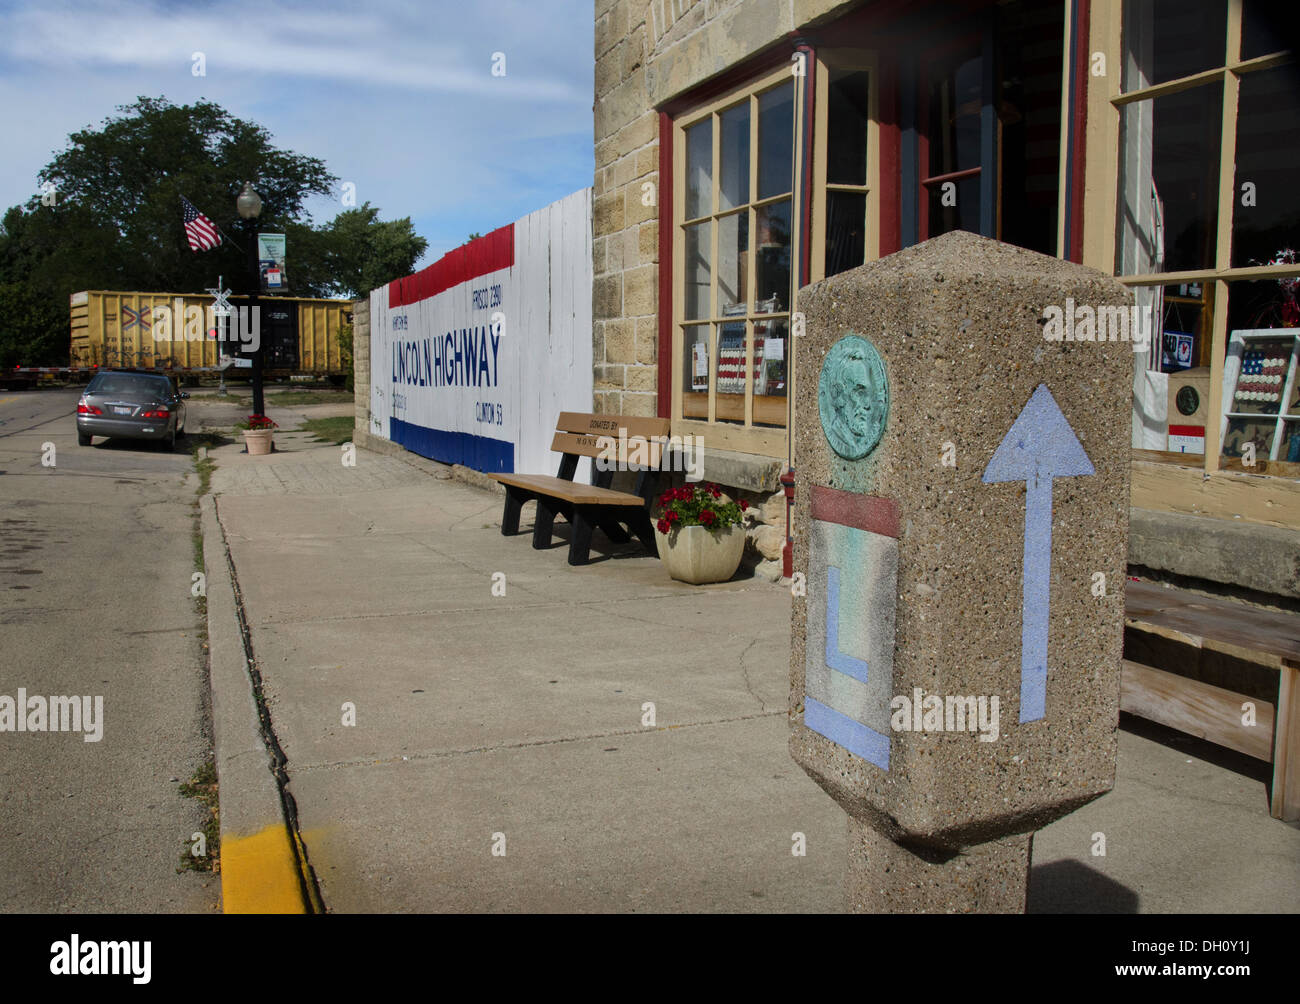 Concrete signposts at Lincoln Highway National Association Headquarters, Franklin Grove Illinois - Stock Image